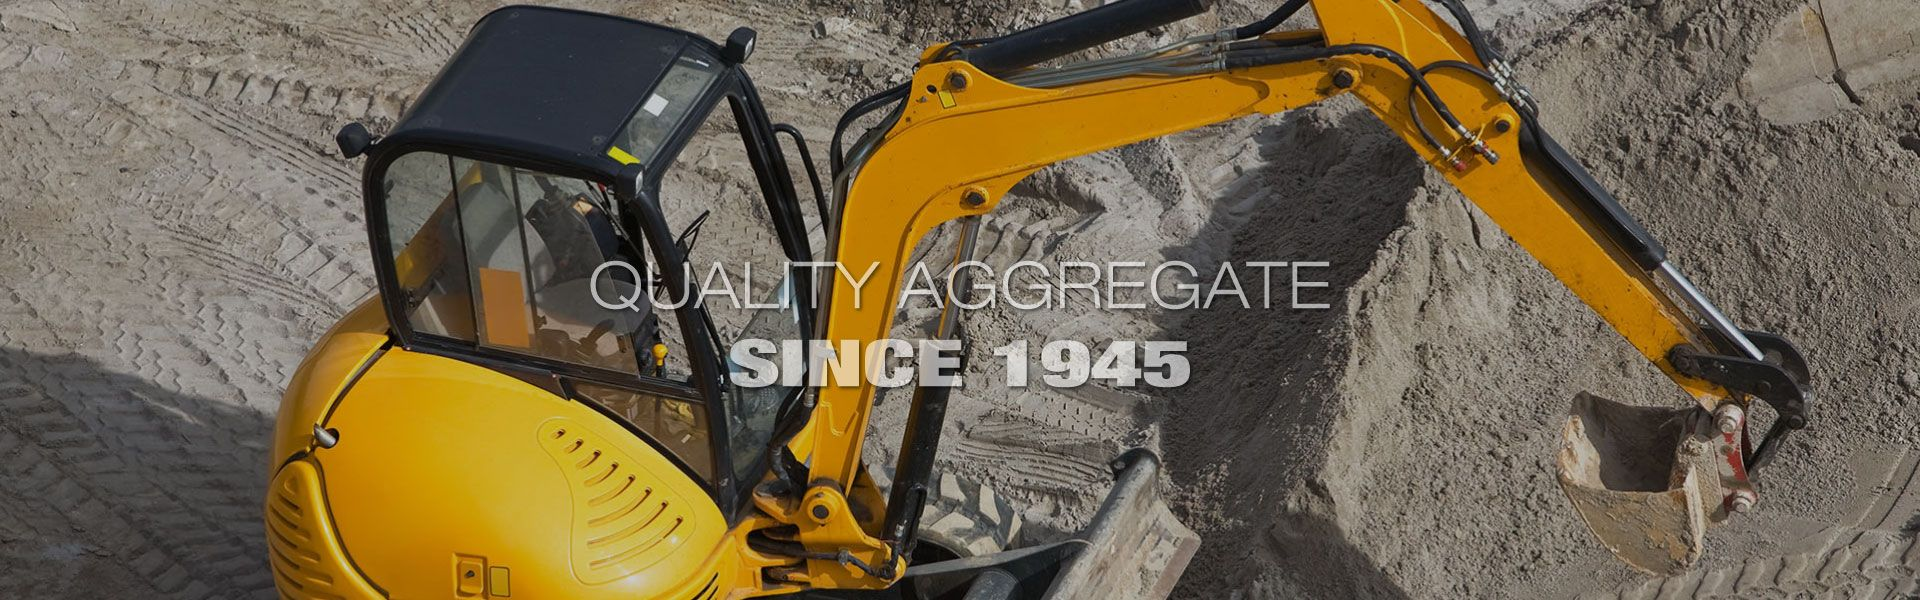 Quality Aggregate Since 1945 | excavator